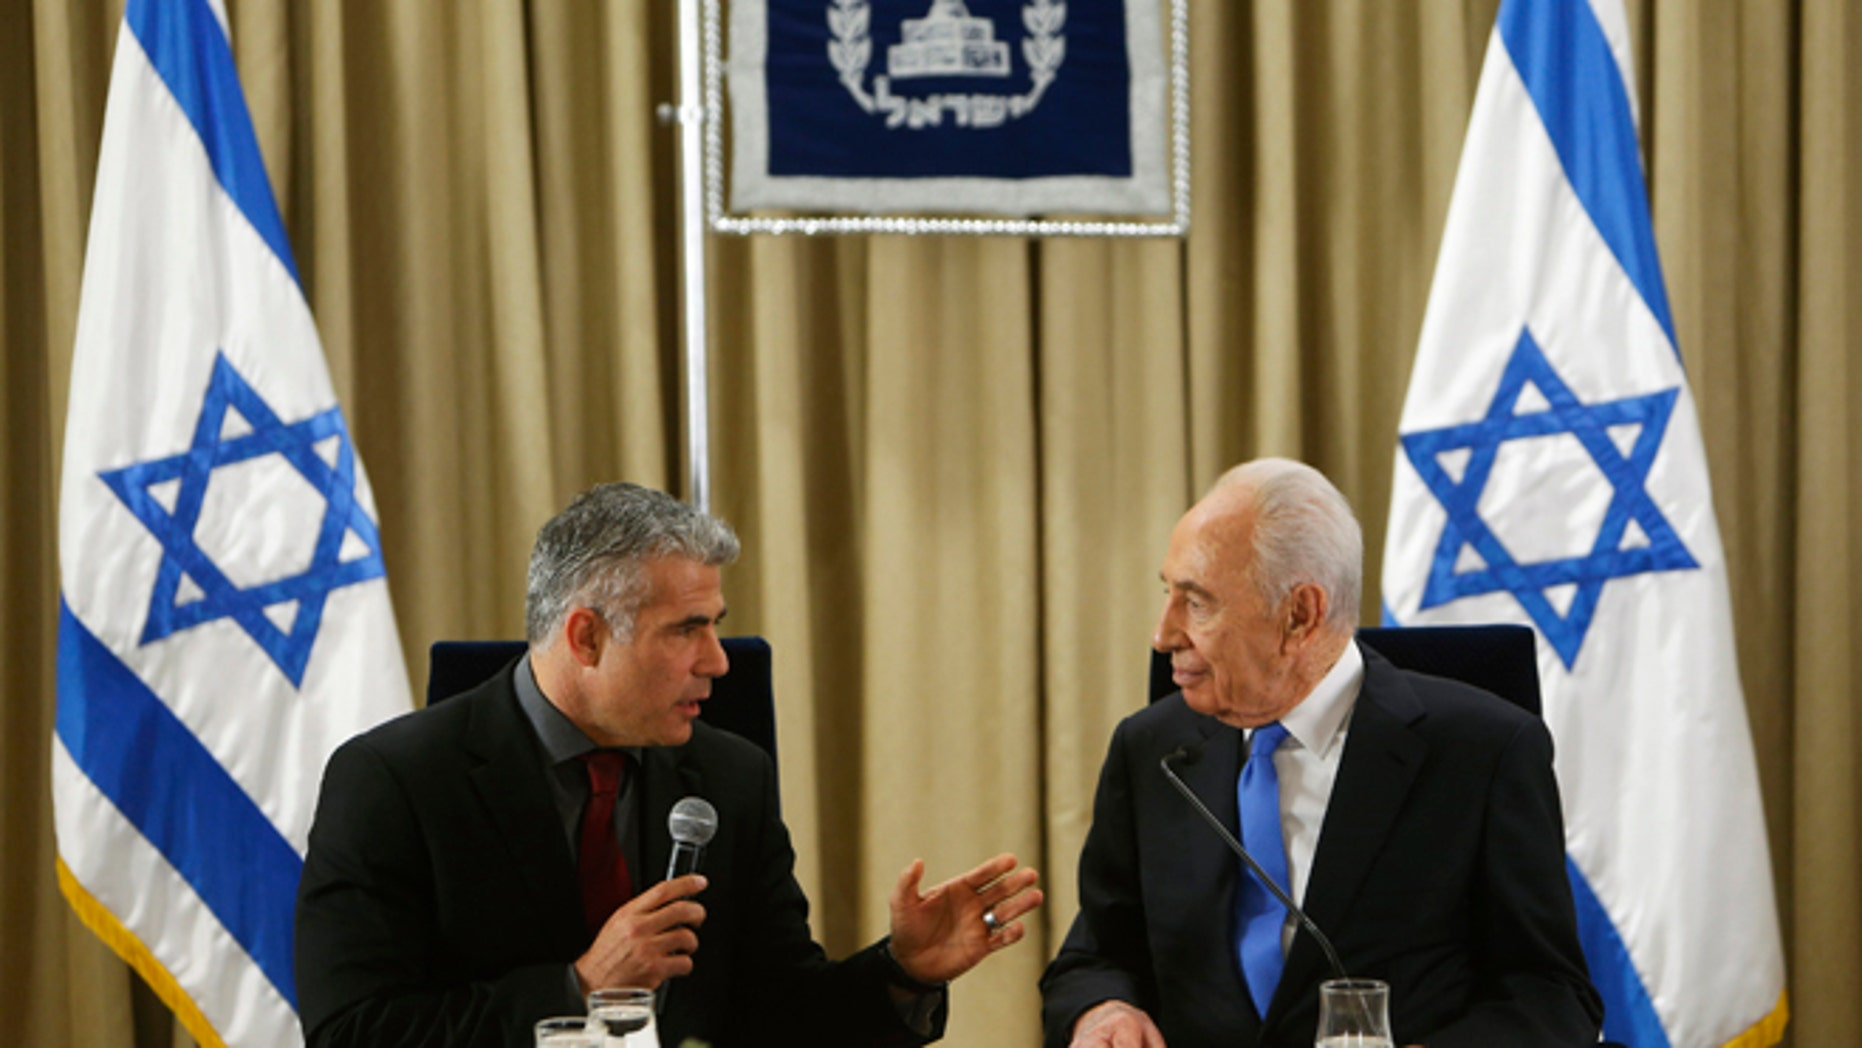 Jan. 30, 2013: Israel's President Shimon Peres, right, listens as Yair Lapid, leader of the Yesh Atid (There is a Future) party, speaks during their meeting in Jerusalem.